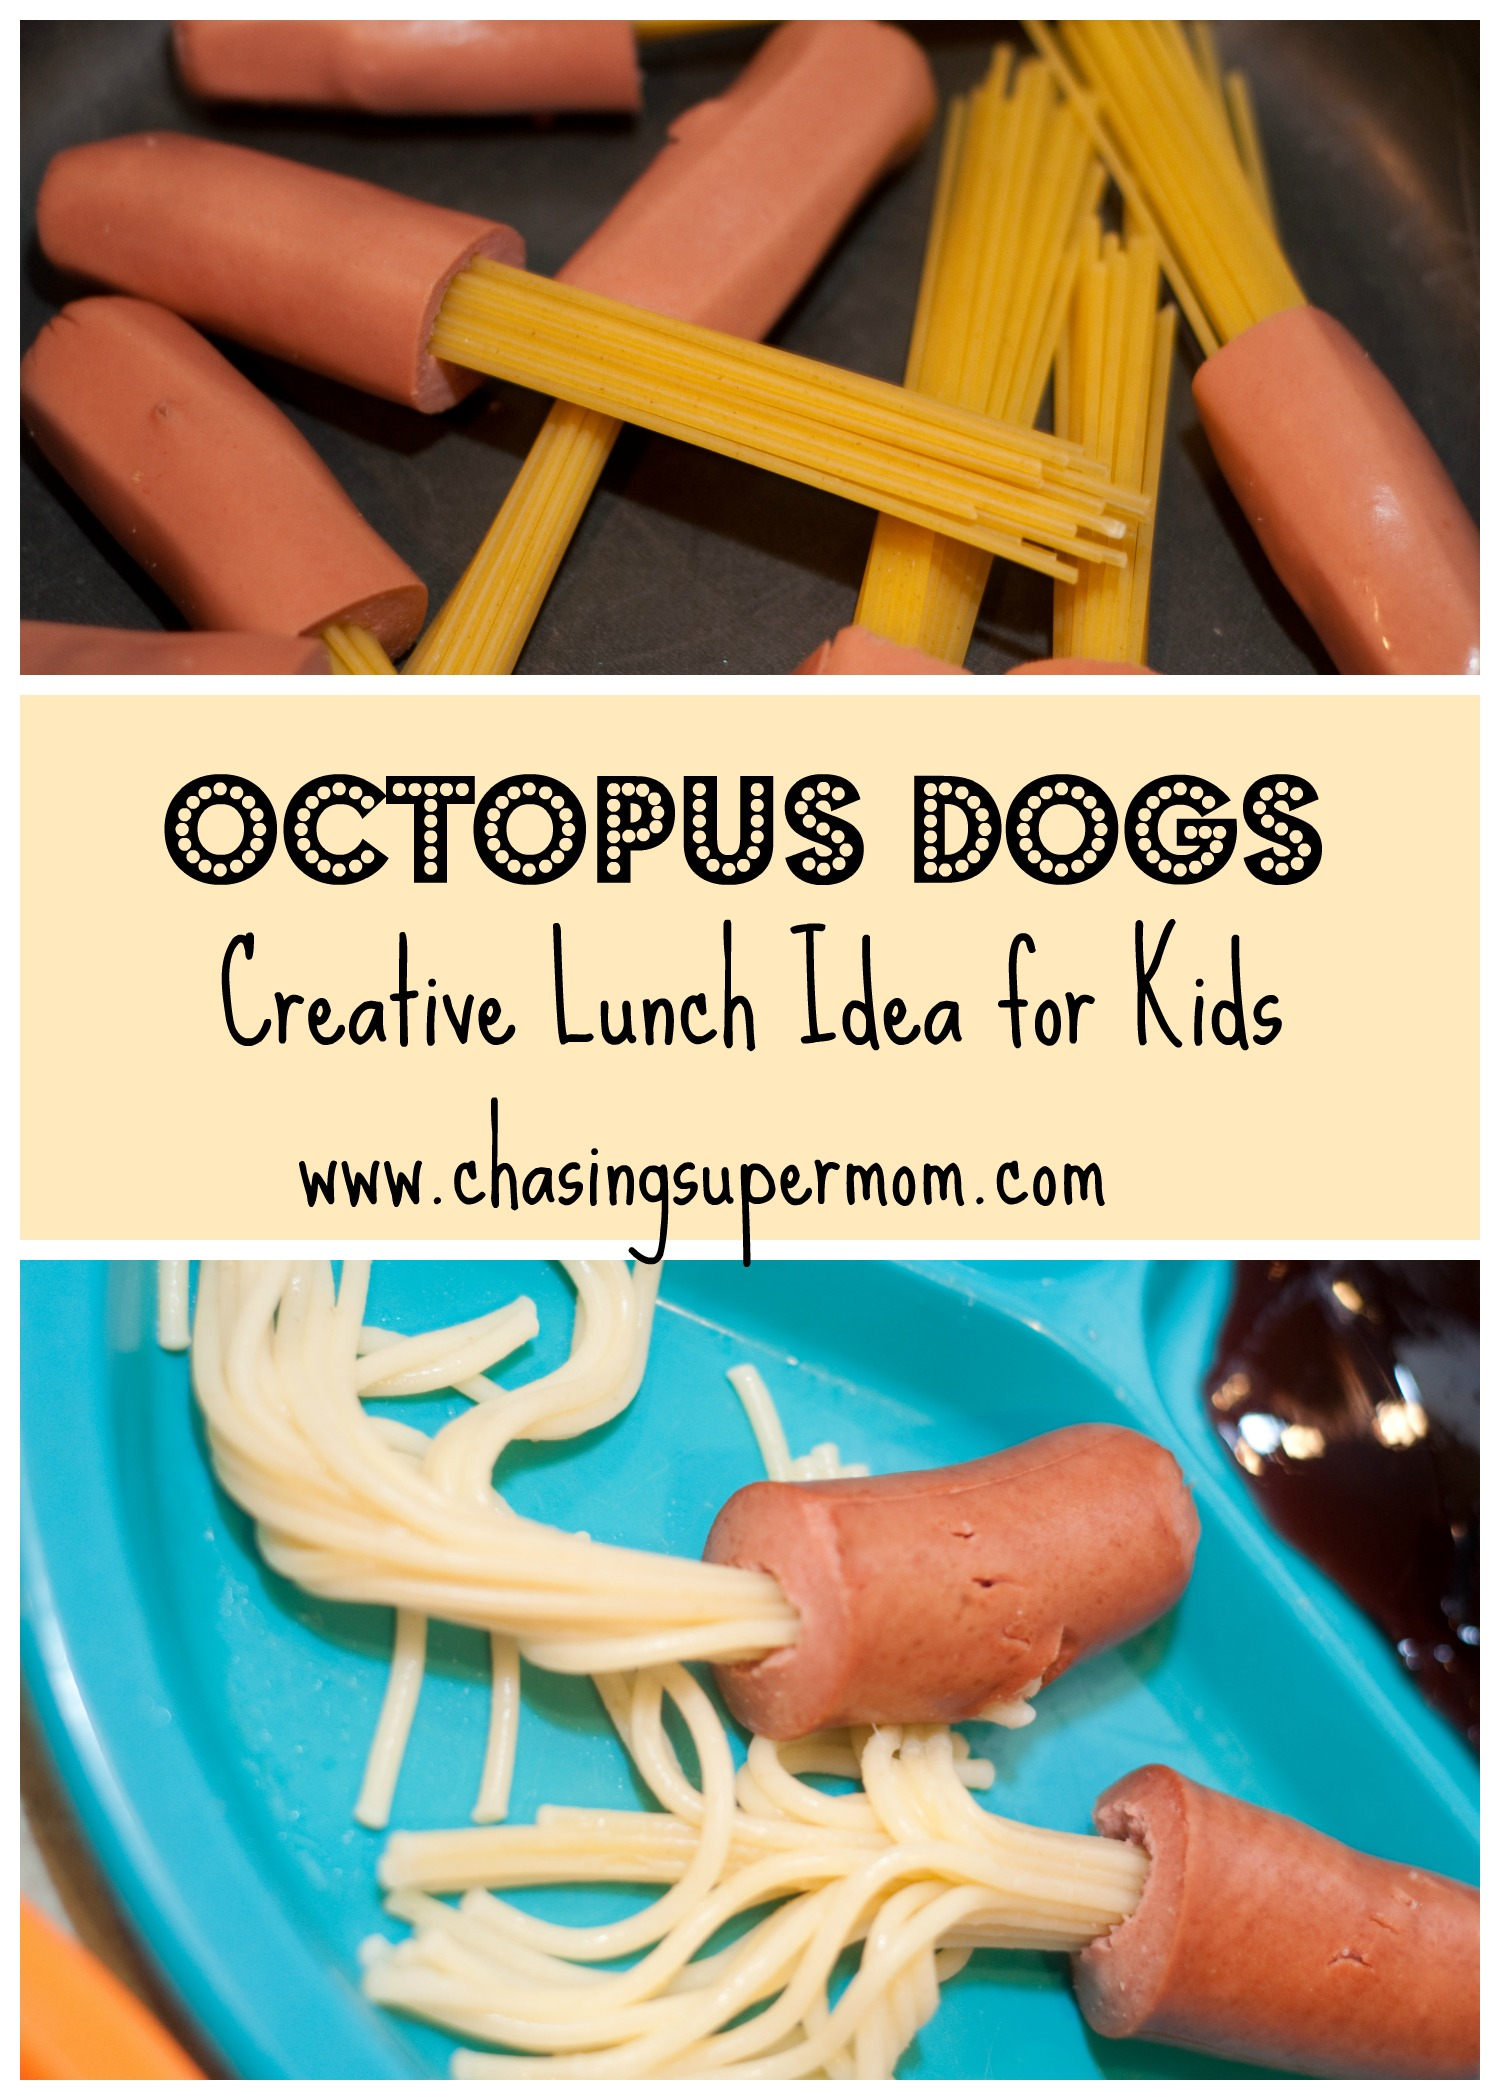 octopus dogs creative meal idea for kids chasing supermom